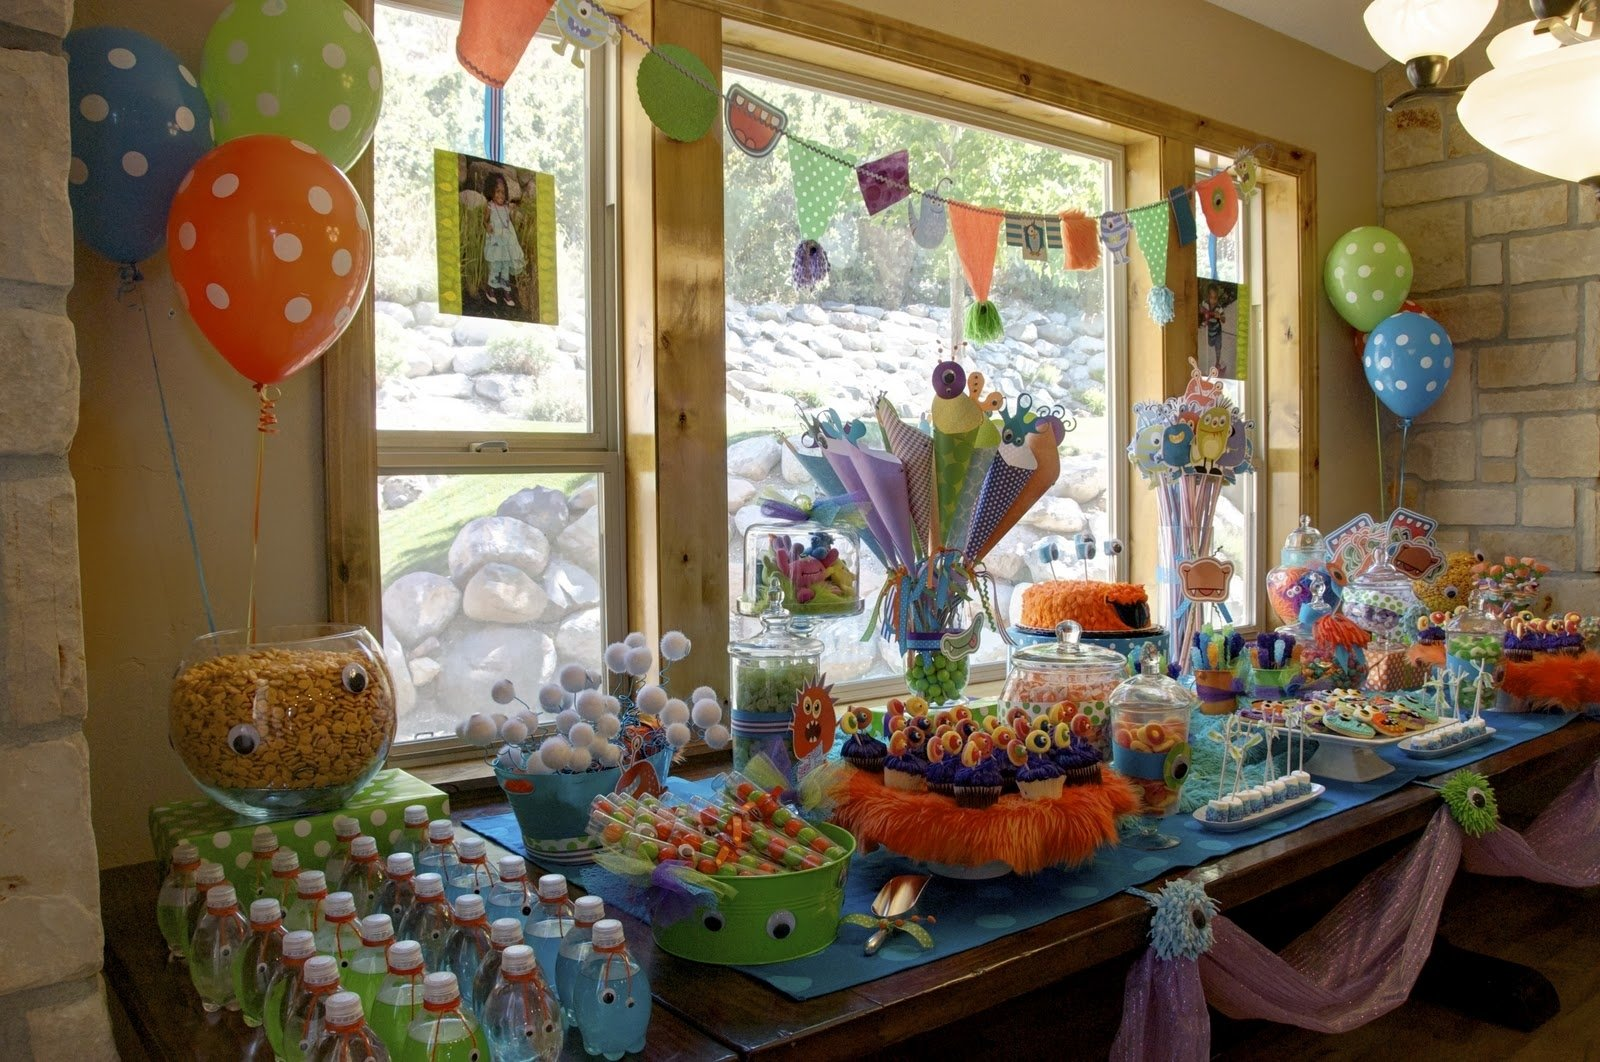 10 Best Ideas For 3 Year Old Birthday 3 year old birthday party ideas nisartmacka 9 2020